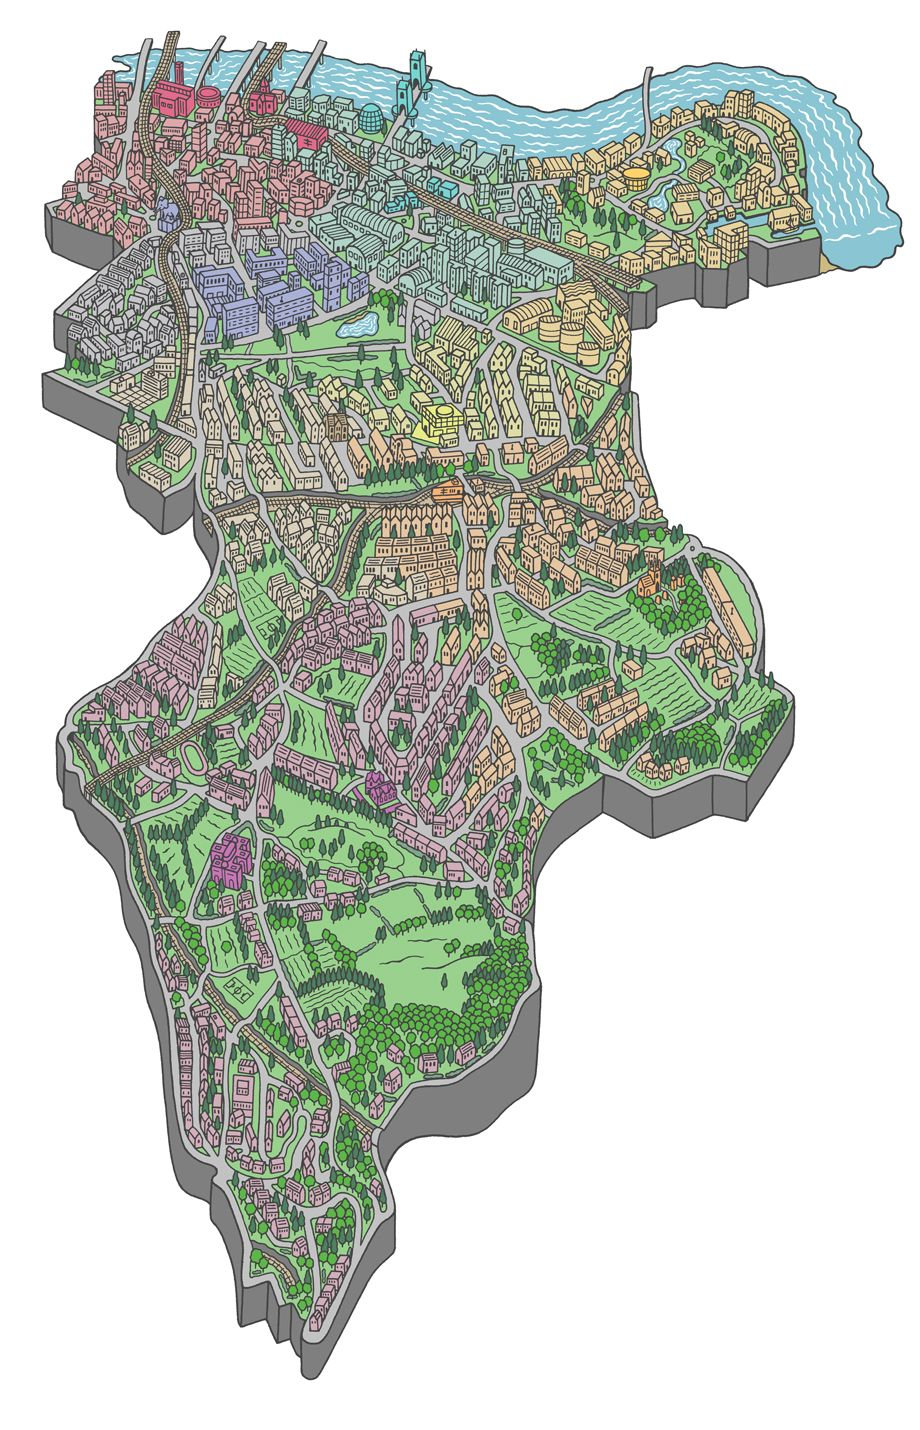 London Map Shoreditch Area: Map Showing Regeneration Areas In The London Borough Of